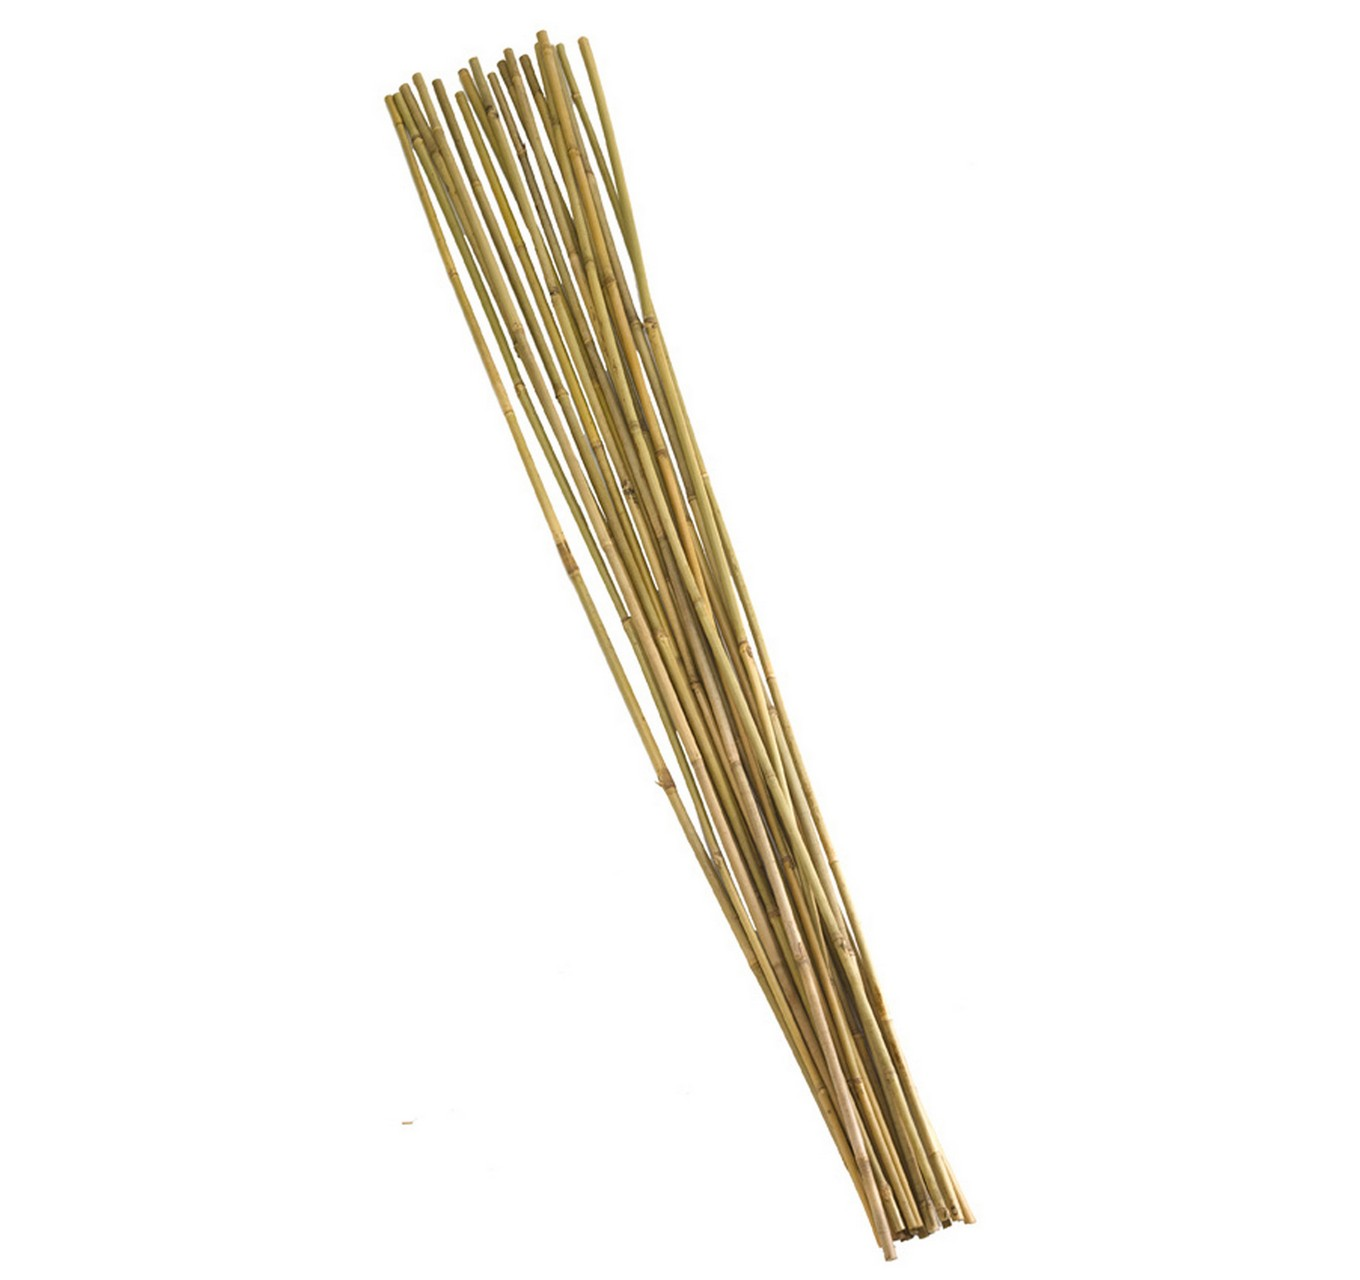 Bamboo Canes 210cm 10pk 7ft